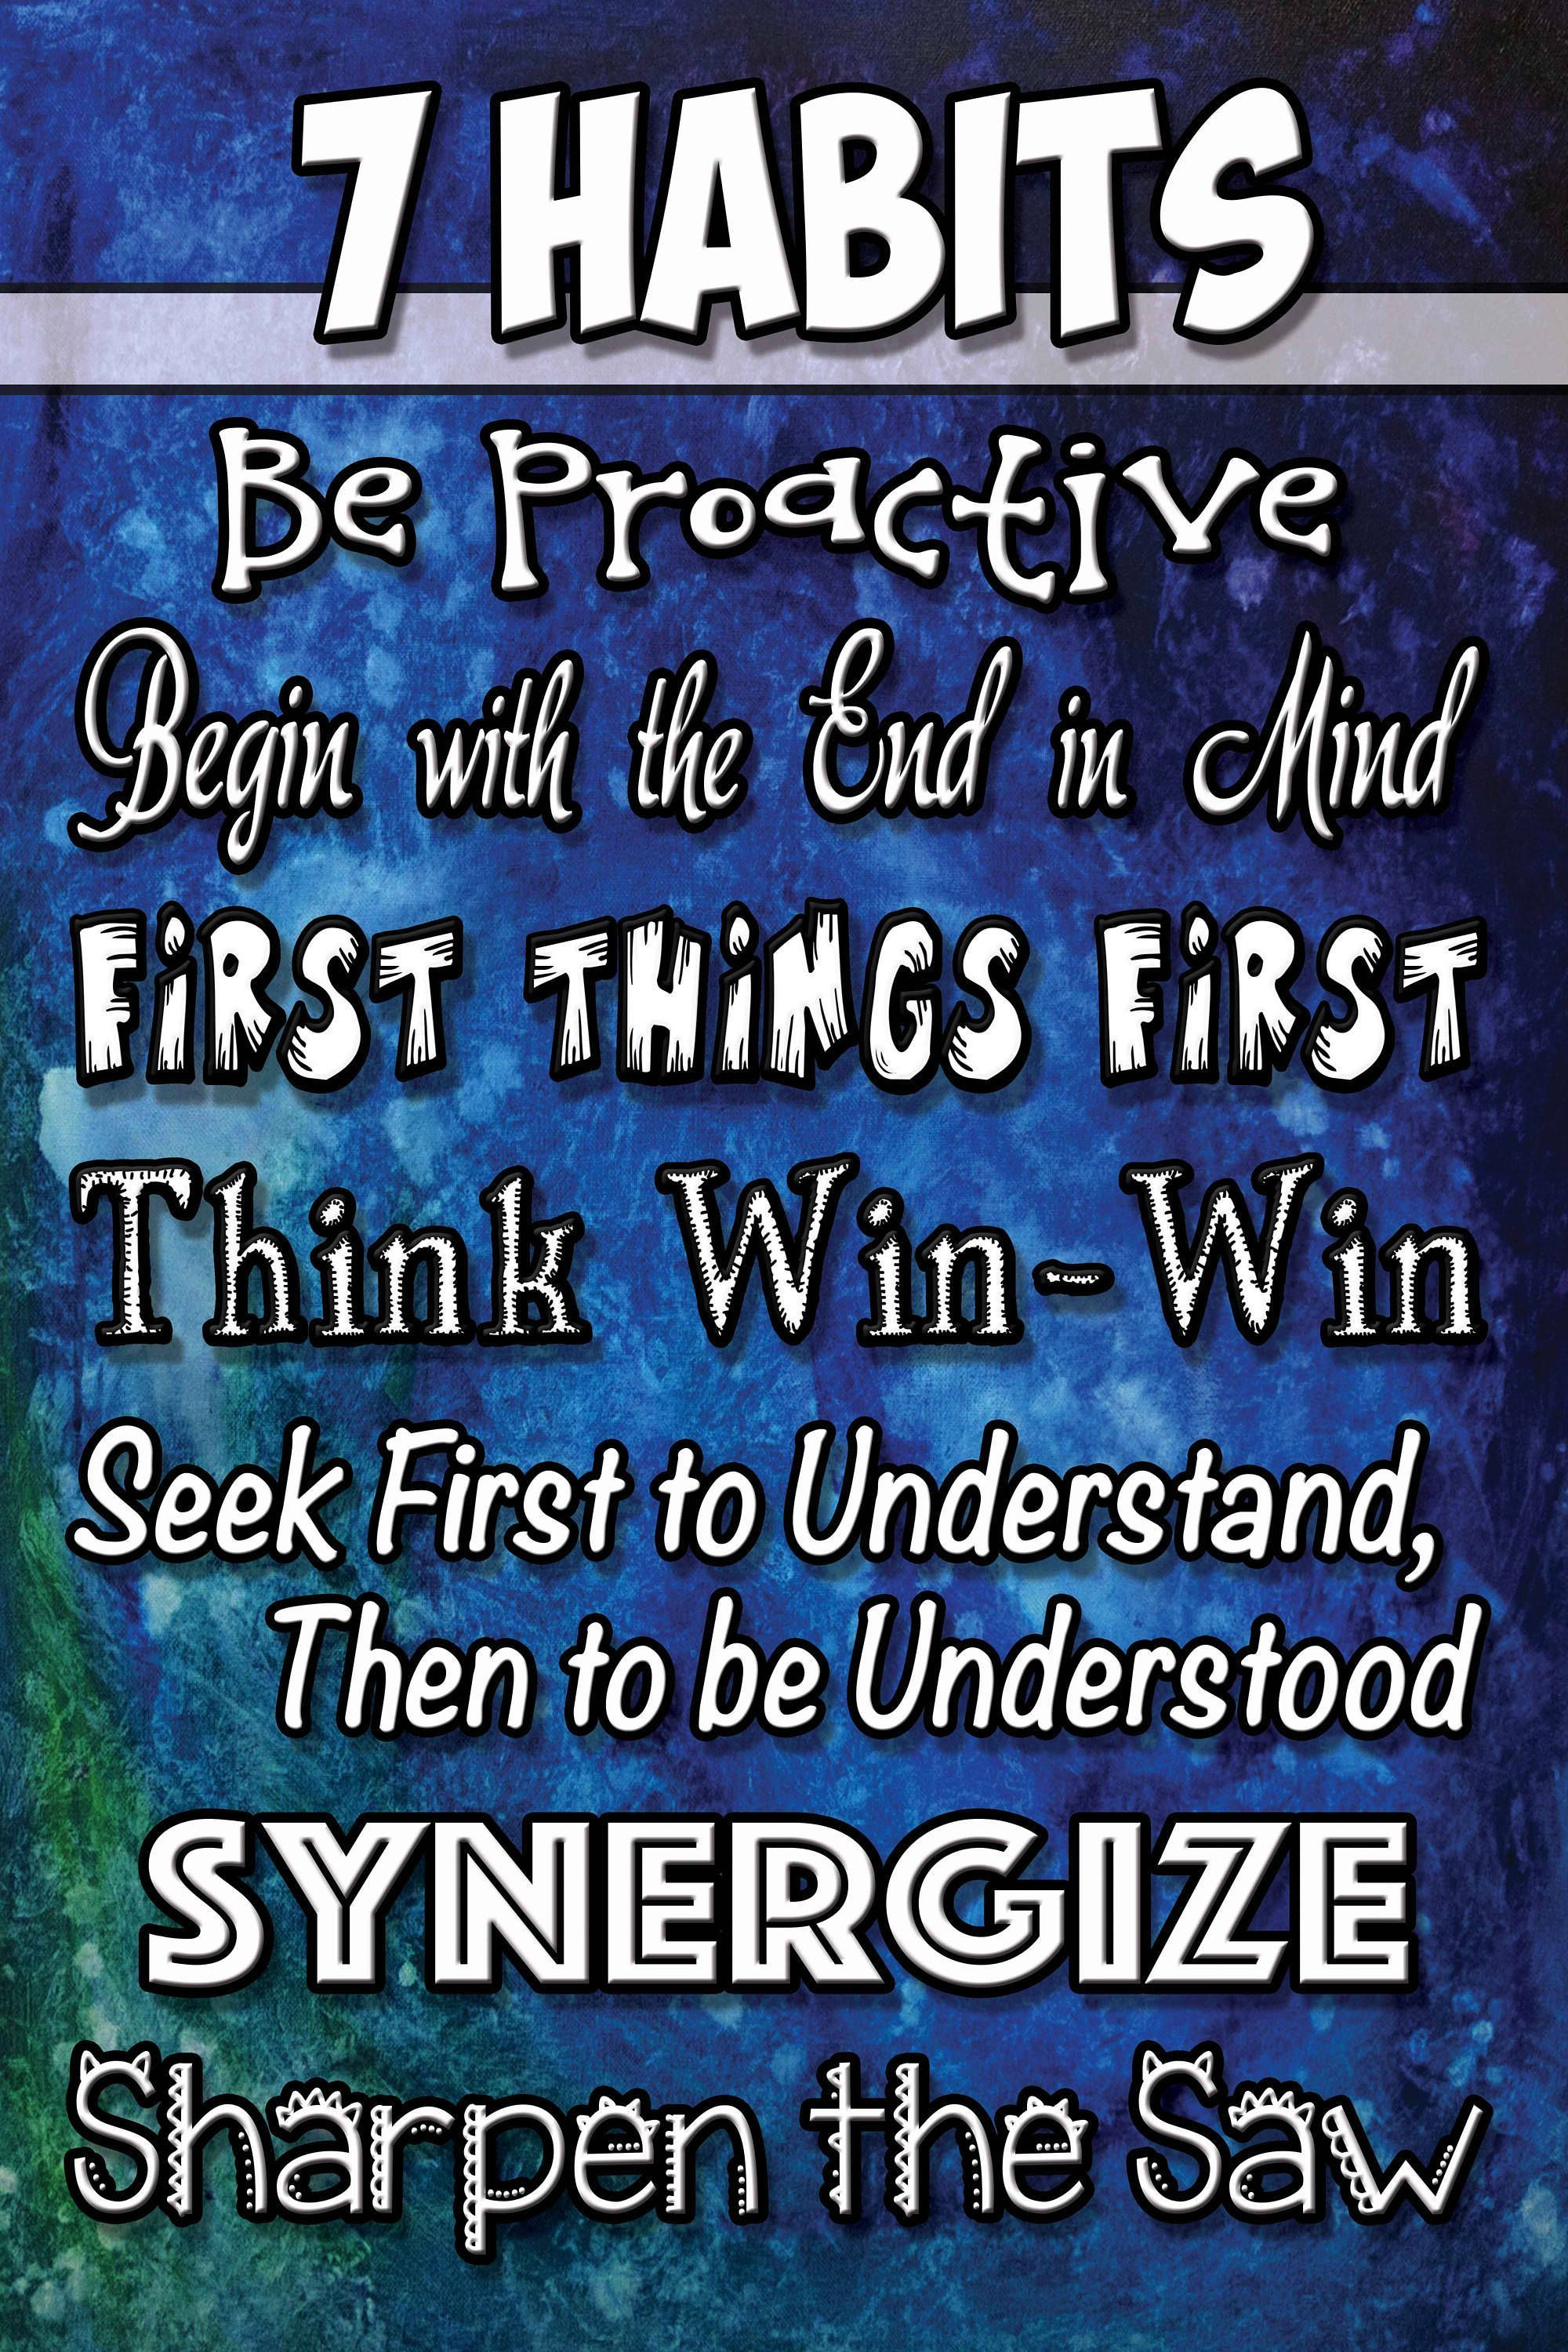 20x30 Blue Amp Green Poster With All 7 Habits This Instant